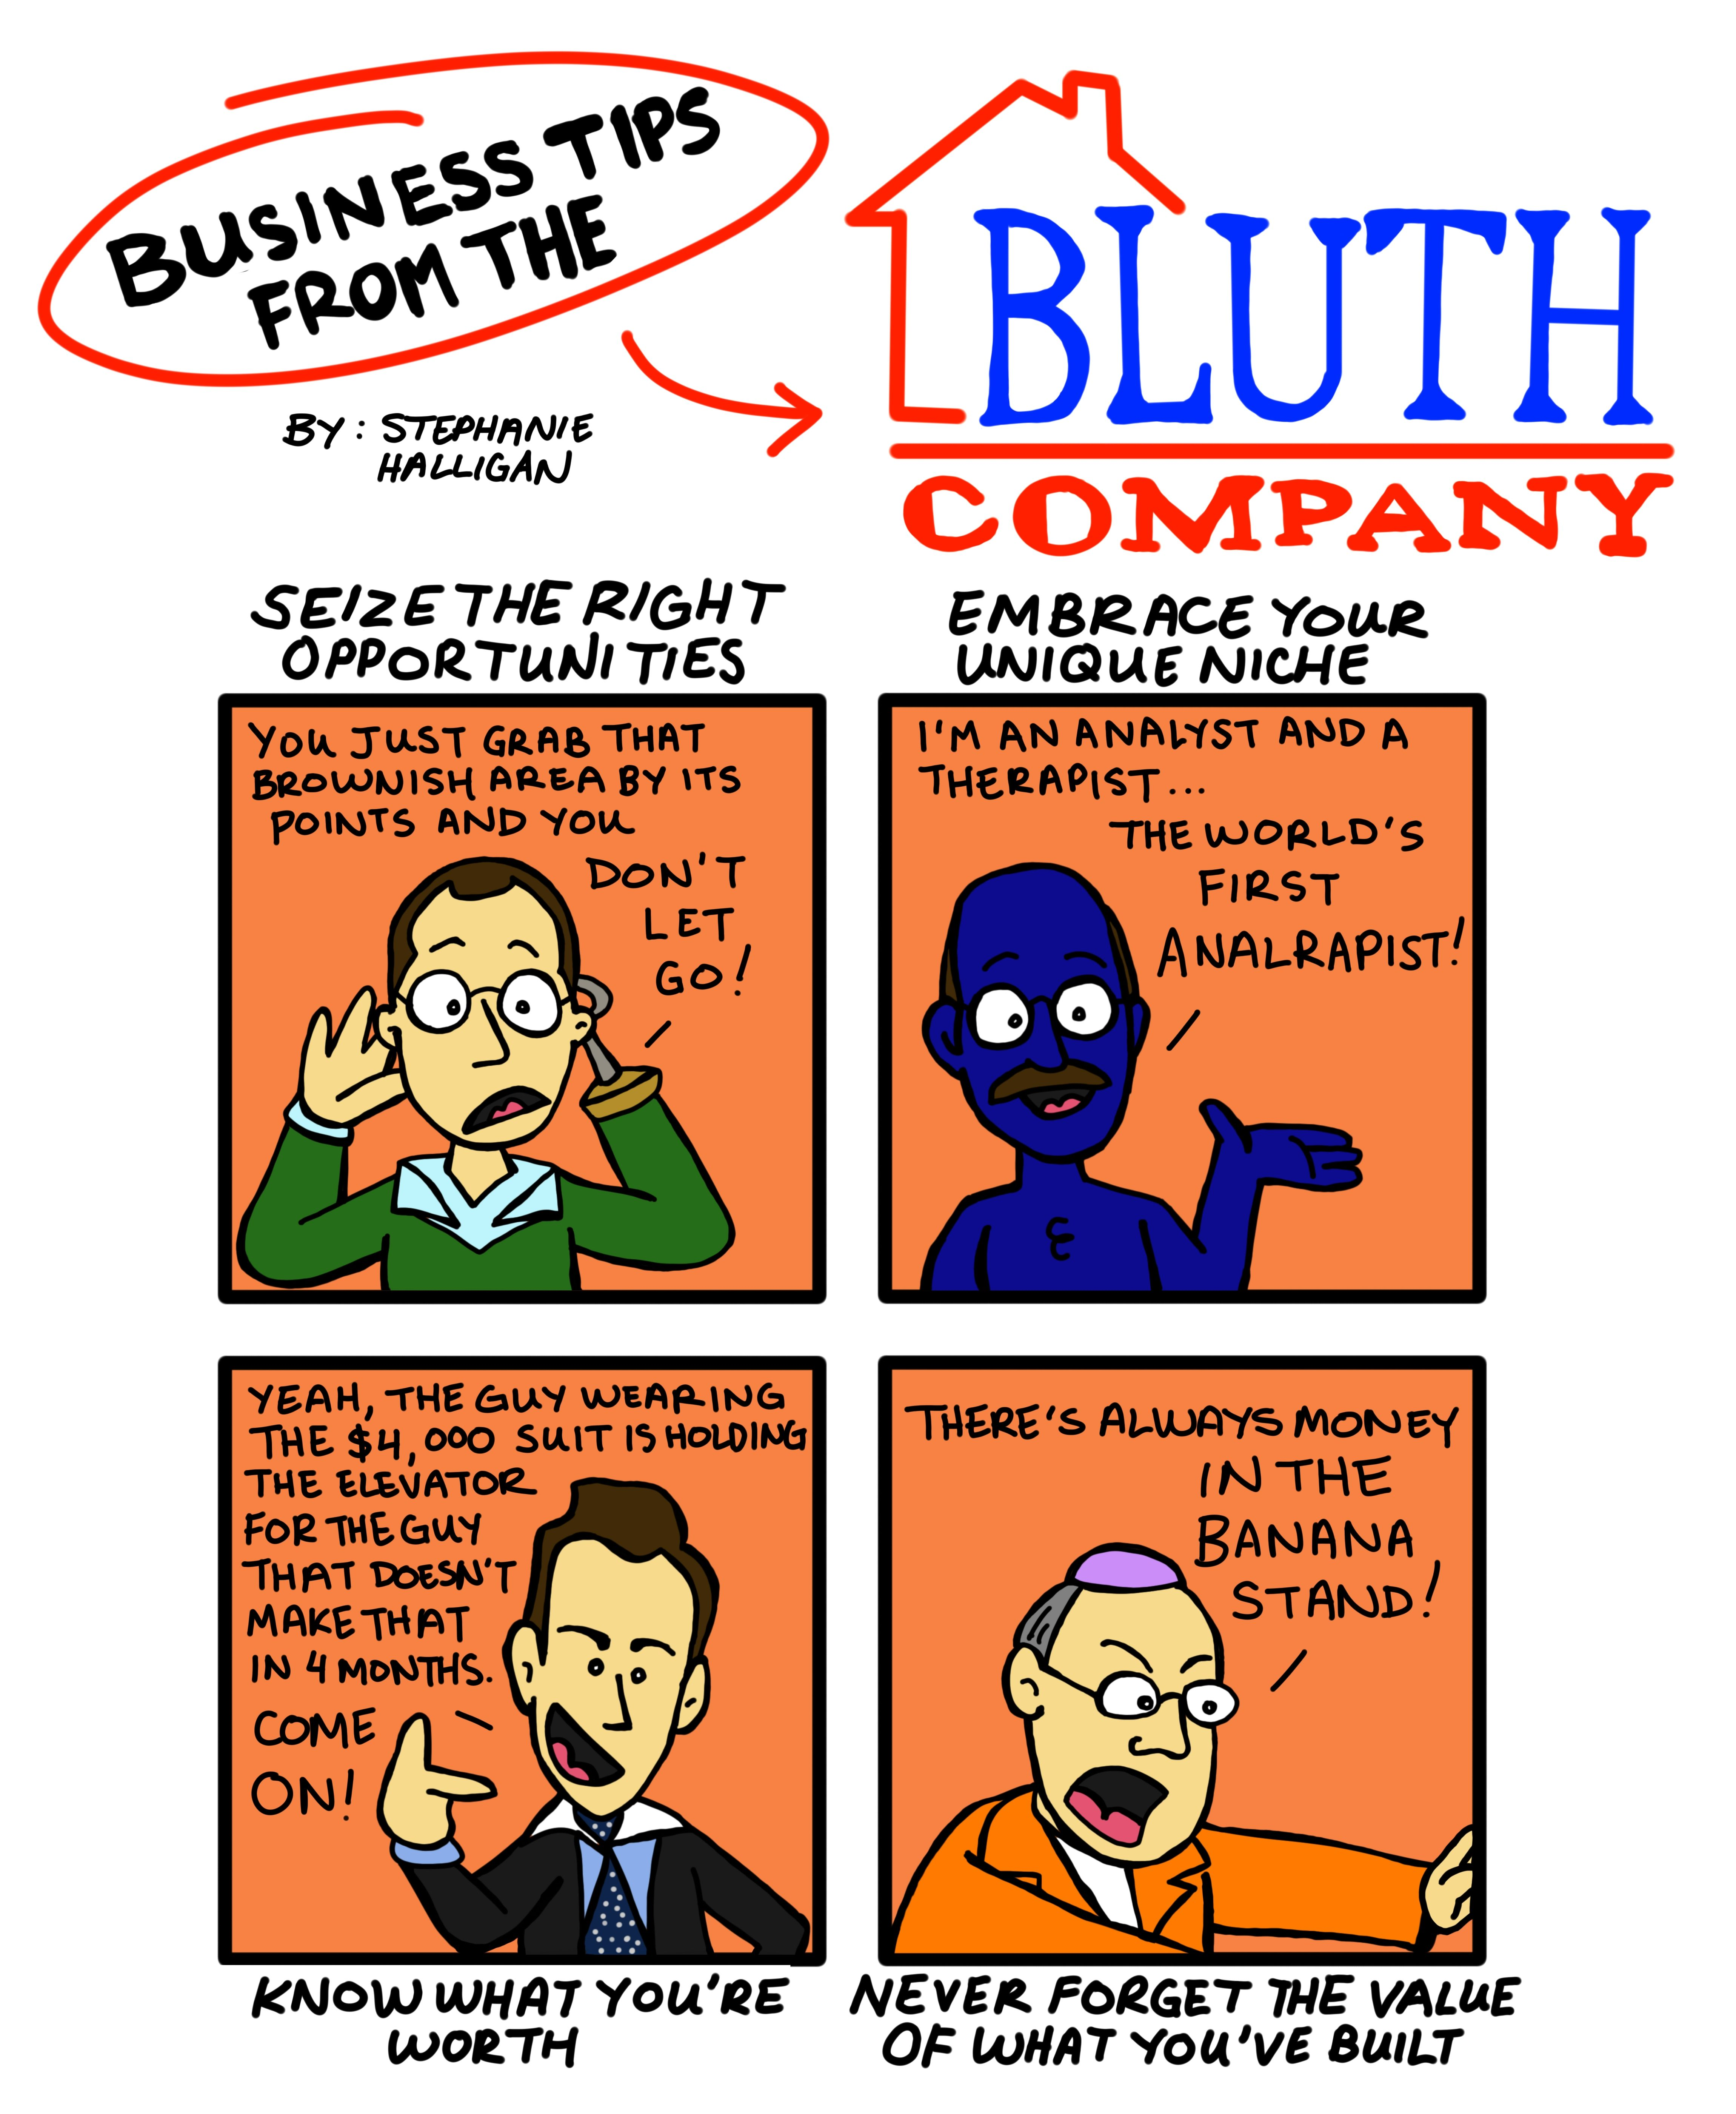 Arrested Development Business tips from the Bluths